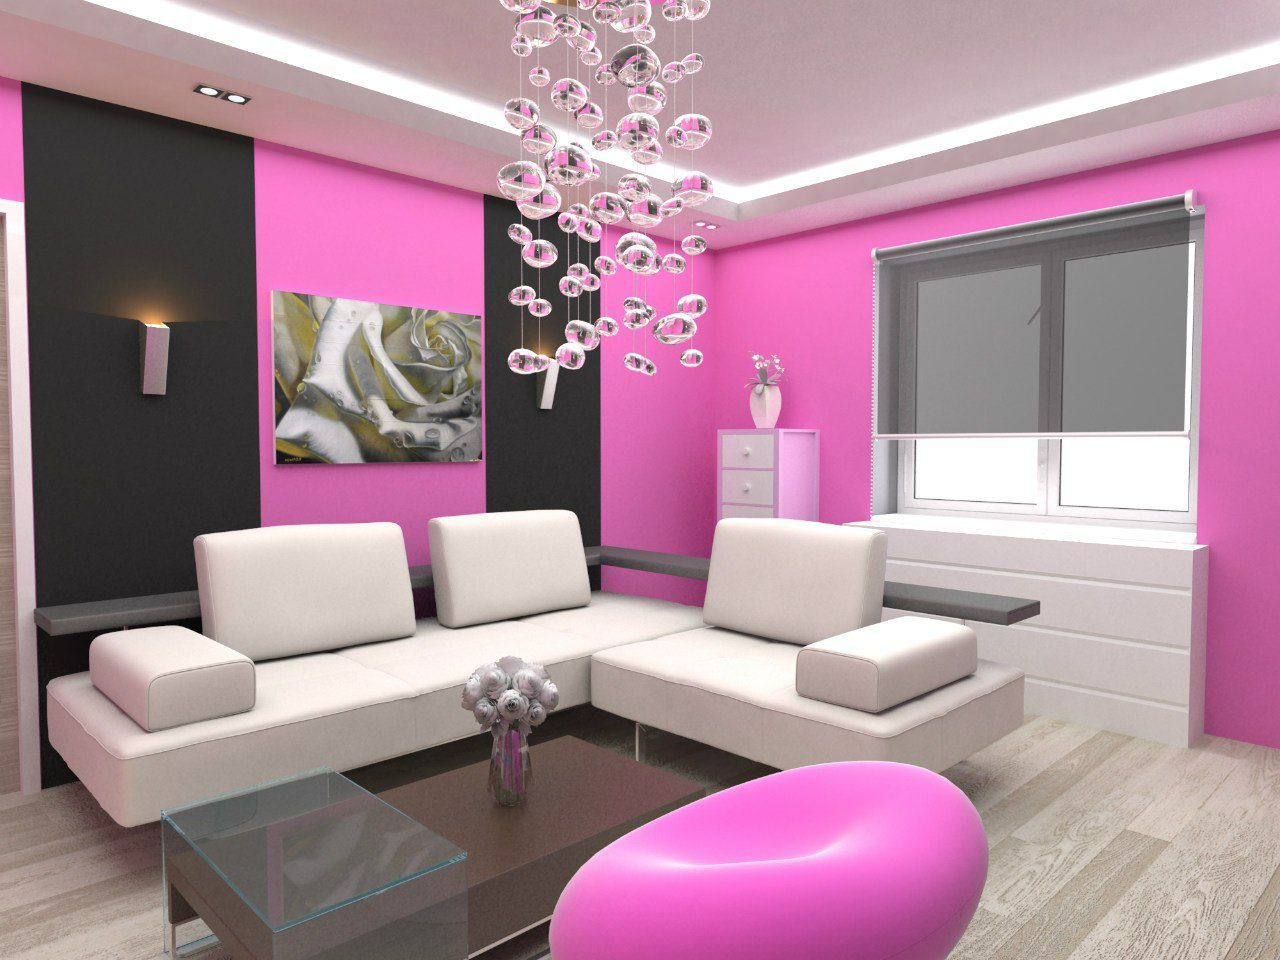 Bedroom Paint Ideas Pink pretty living room paint idea with pink and black painted wall and